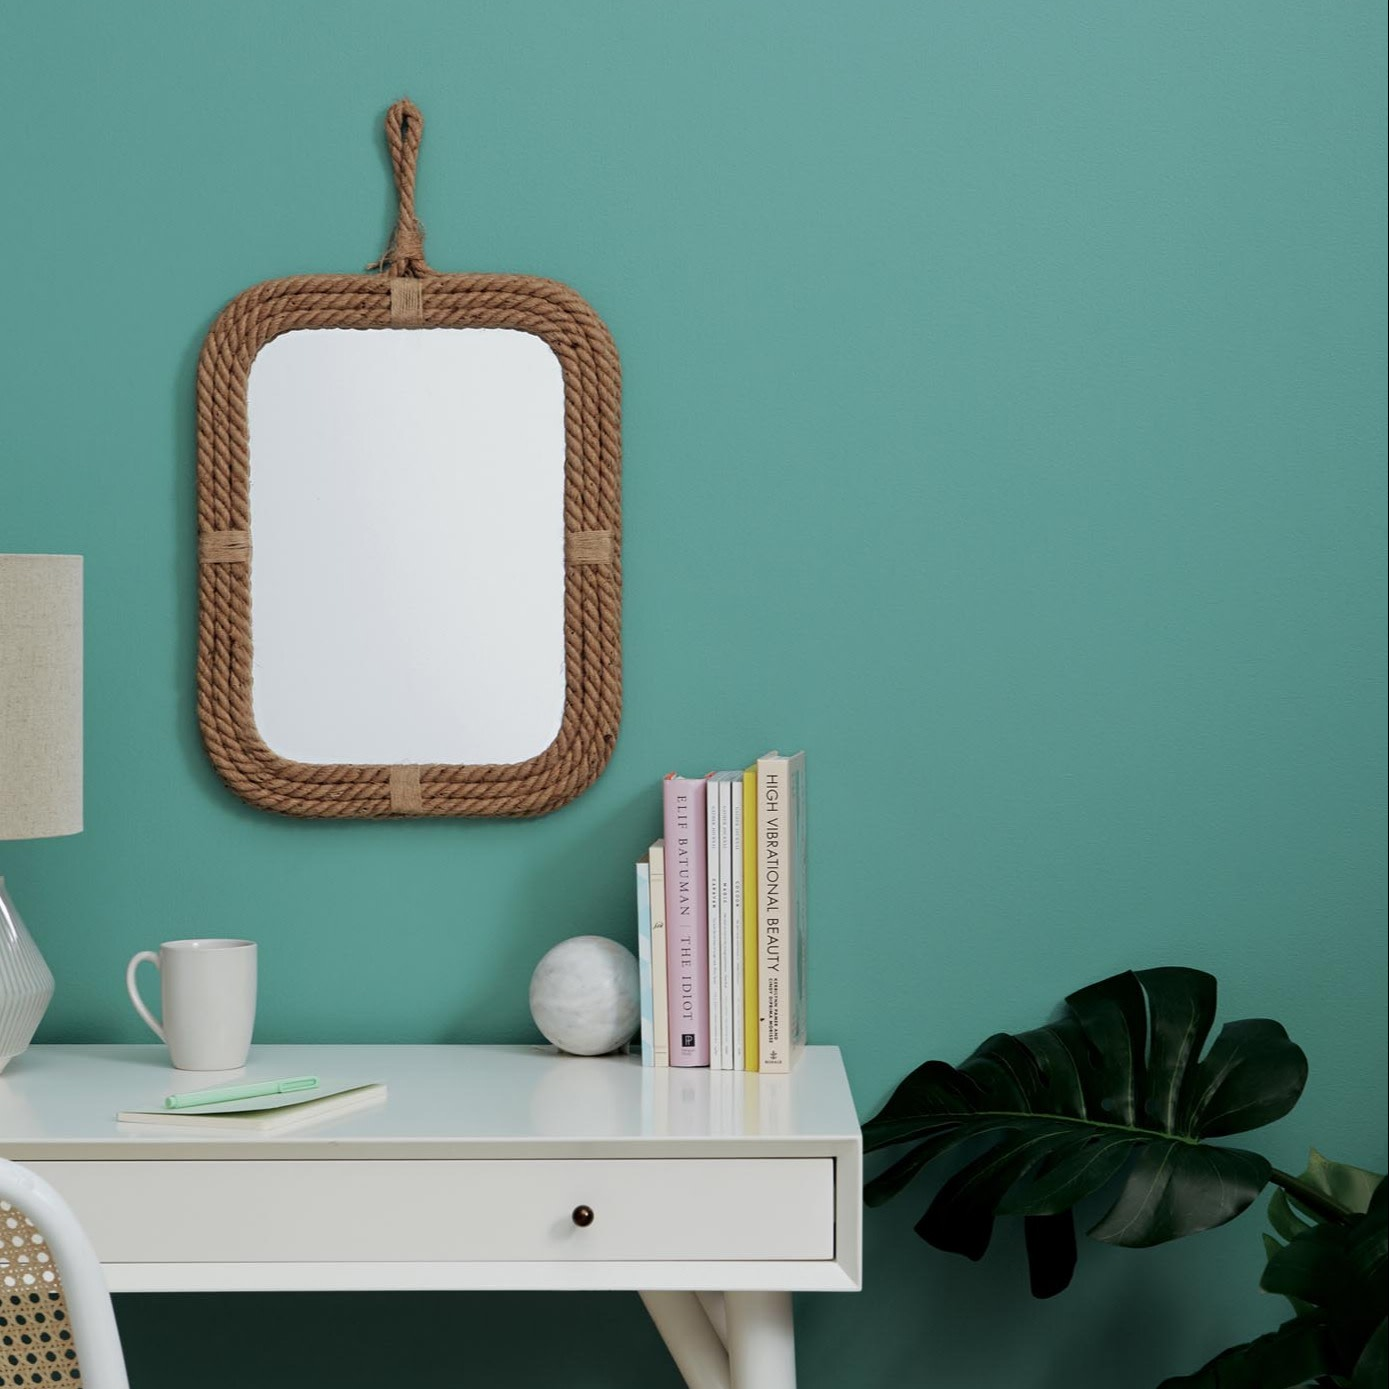 vanity mirror, desk, and plant, teal wall paint color Clare paint vacay